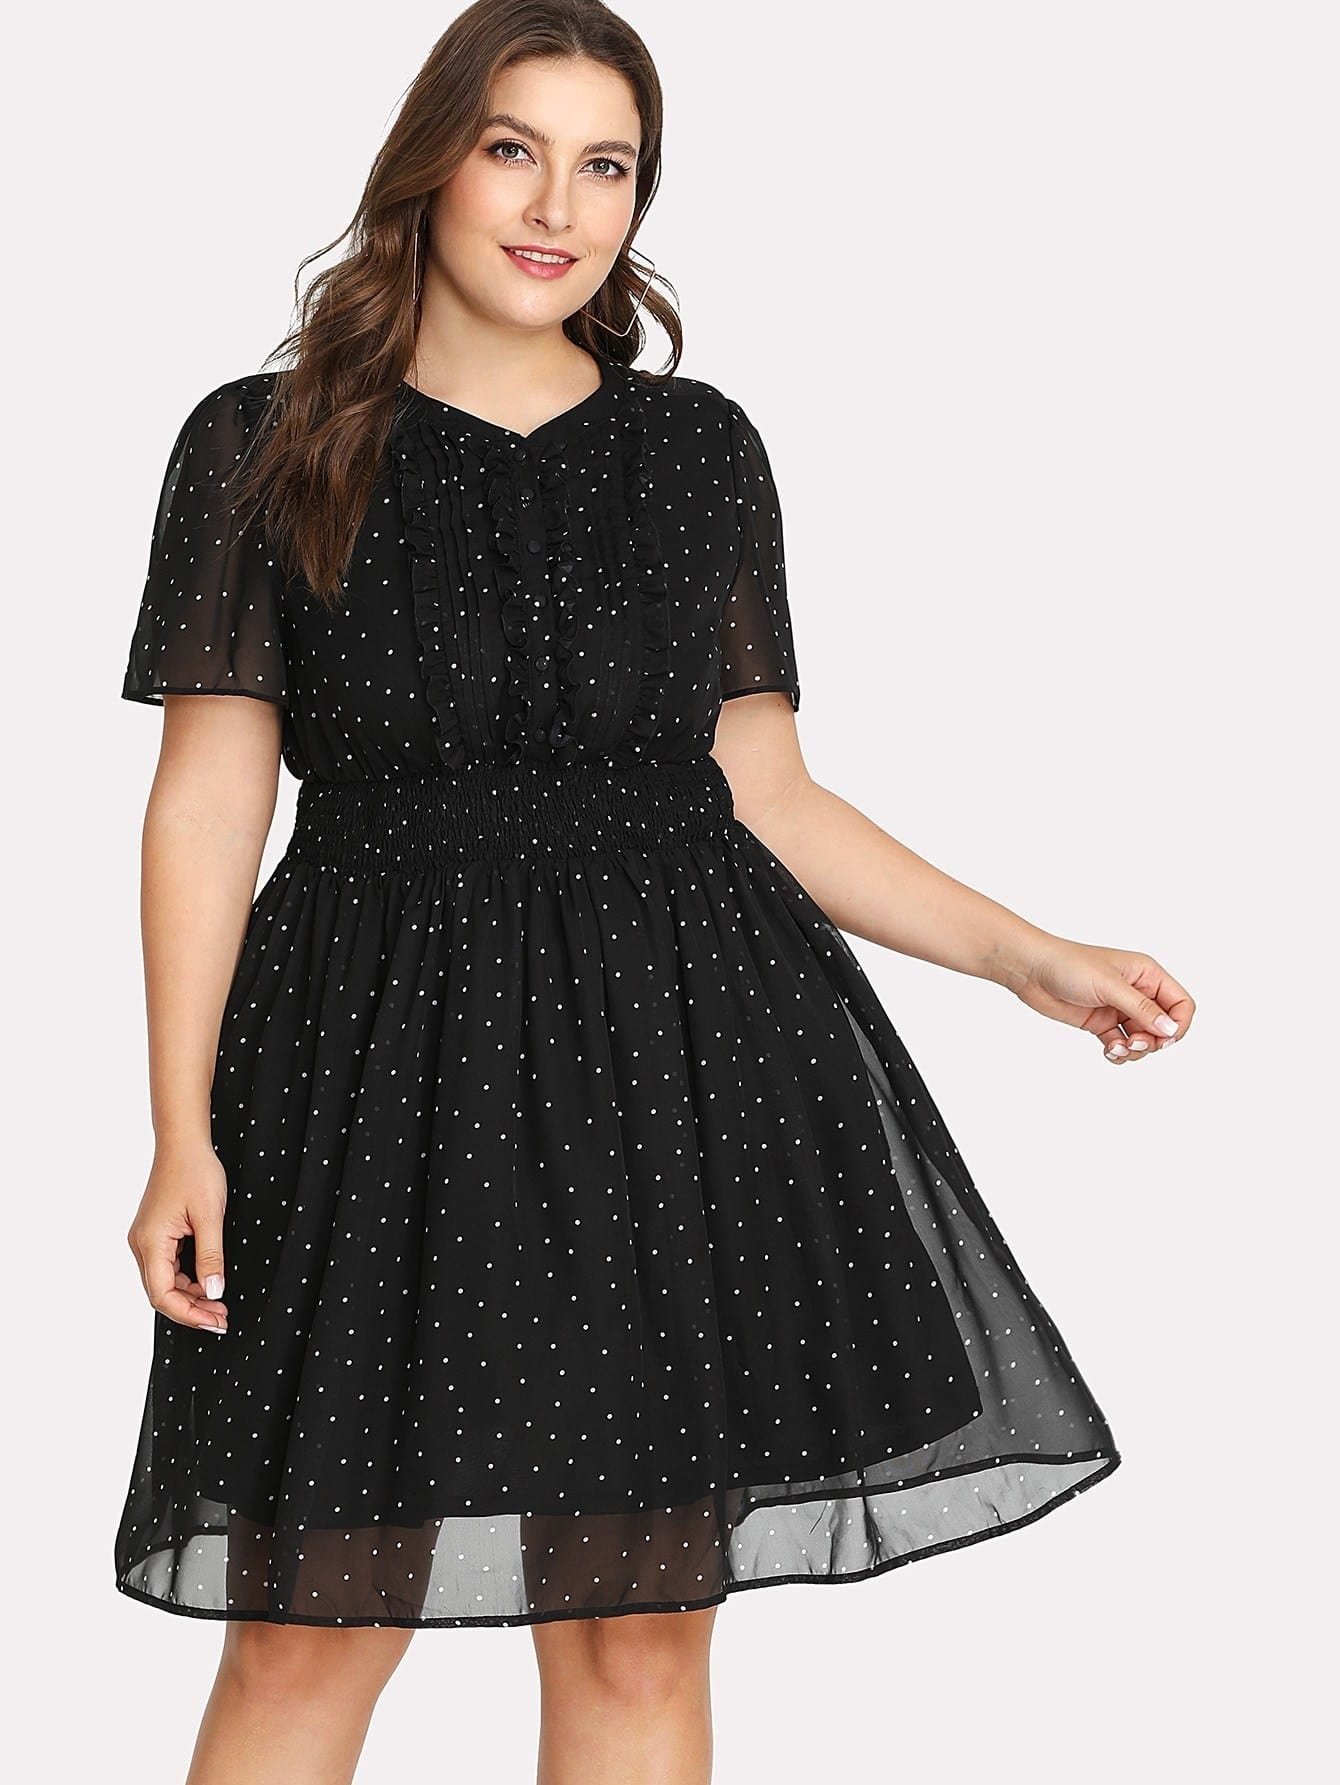 Frill Detail Fit & Flare Polka Dot Dress dot mesh overlay frill detail fluted cuff top